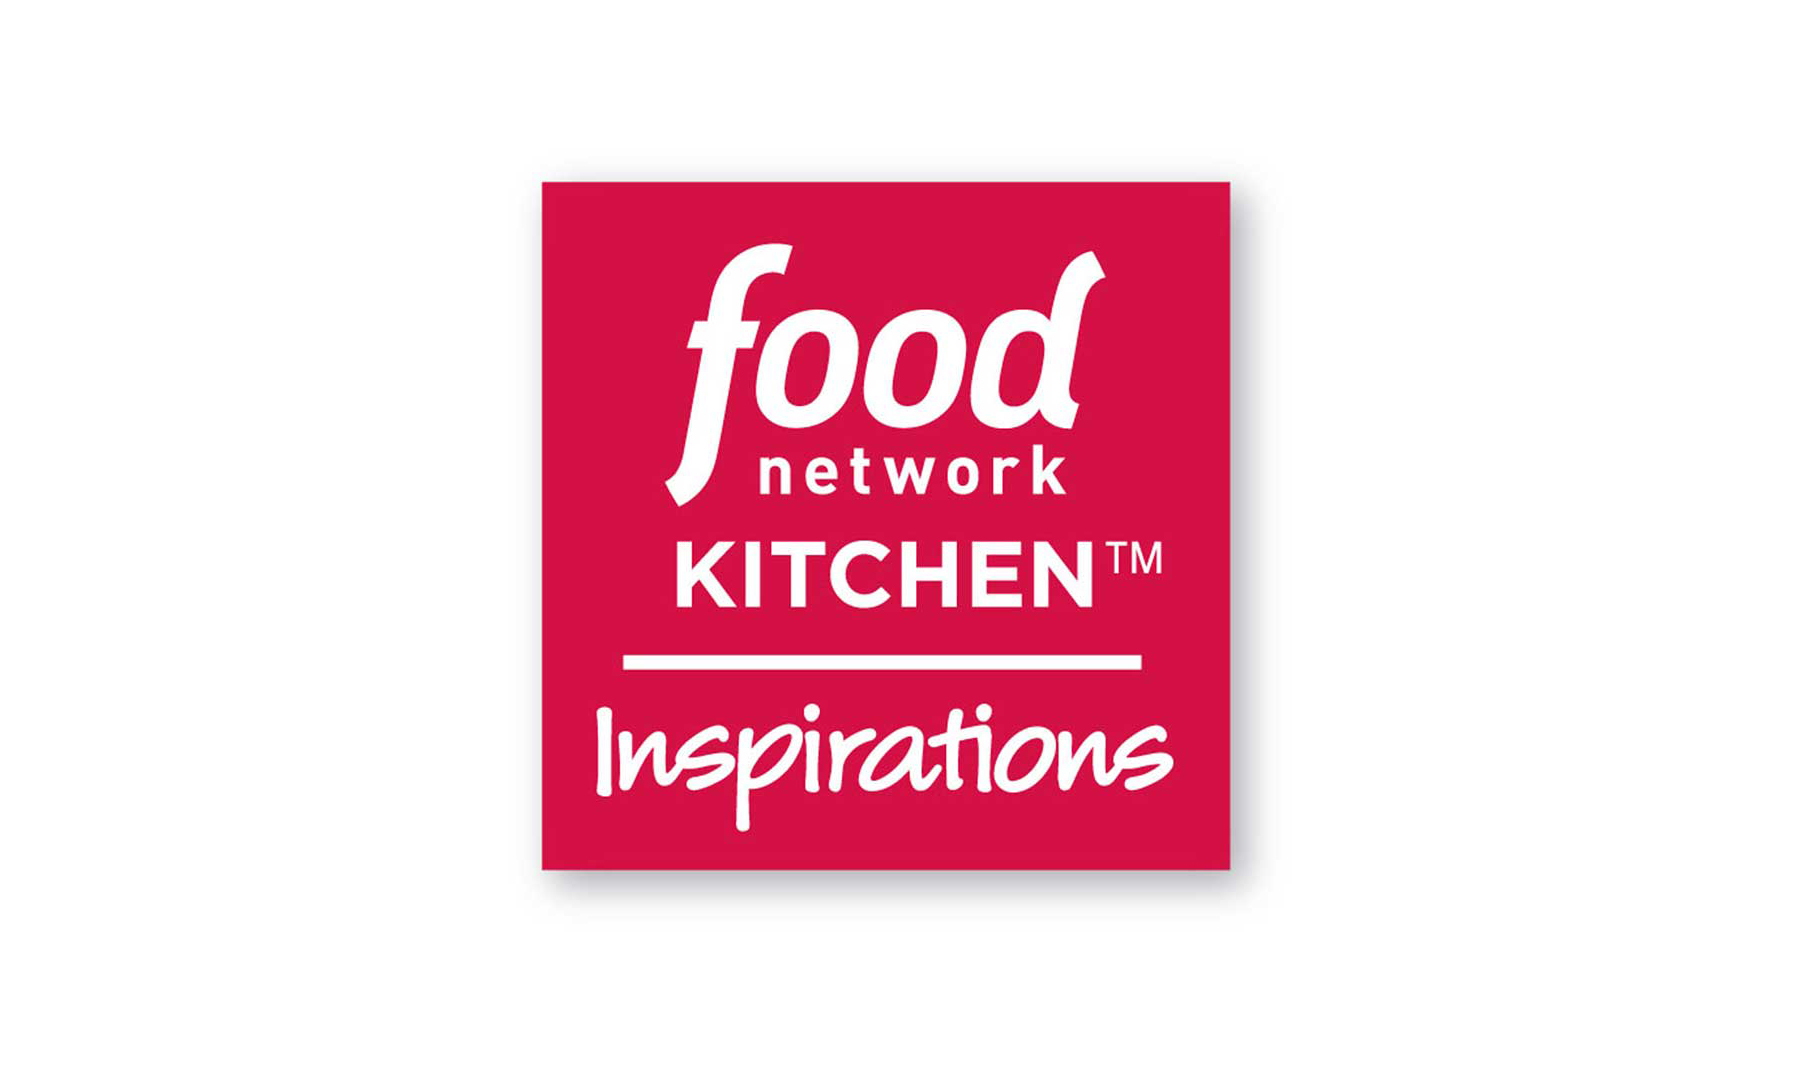 Food Network Kitchen Inspirations logo